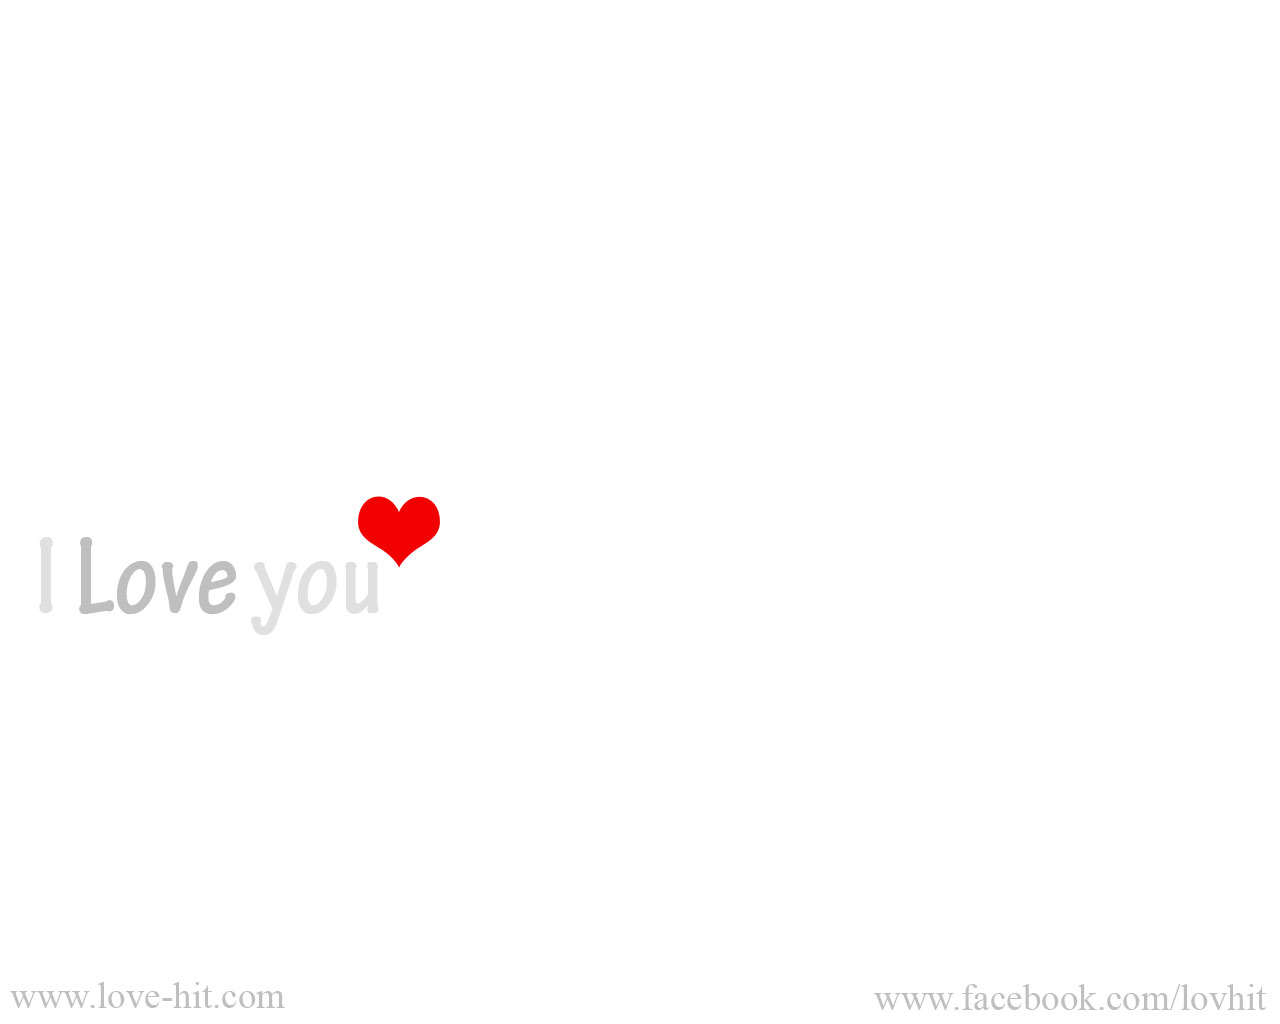 I Love you Grey text Red Heart